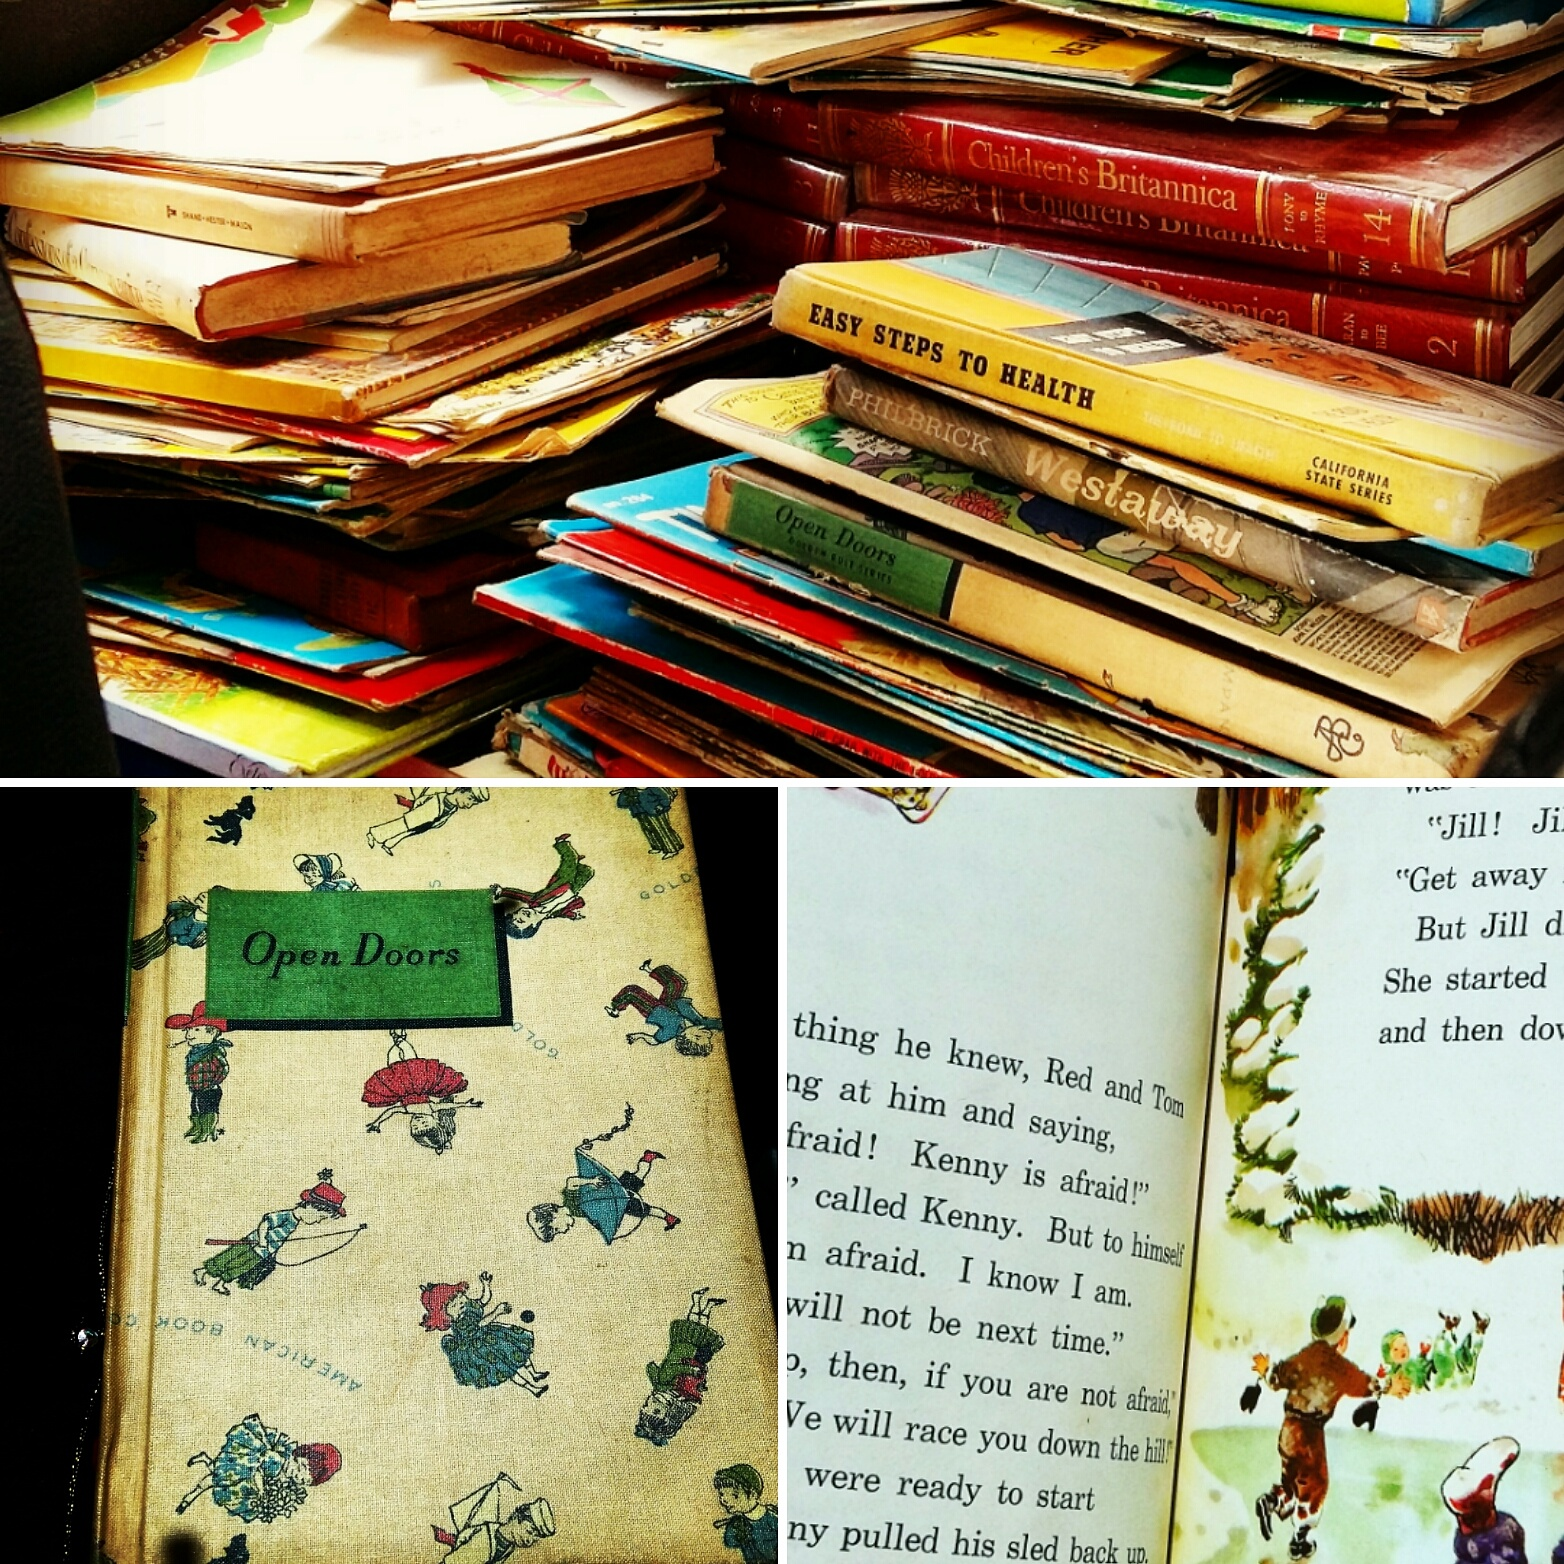 Of Friends, Books and Magic